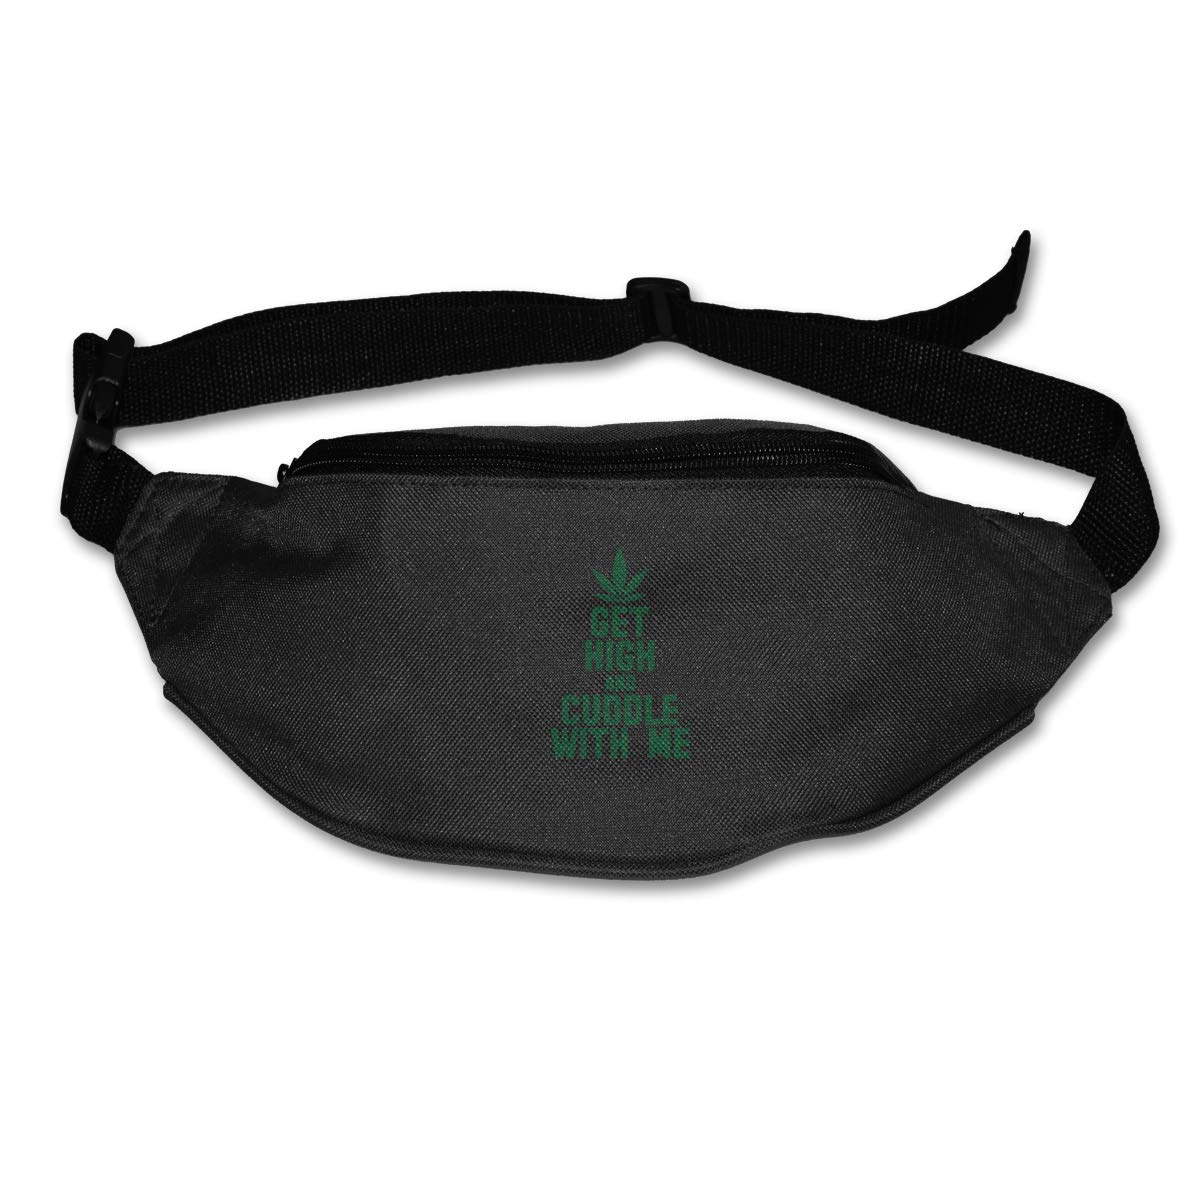 GET HIGH And Cuddle With ME Sport Waist Pack Fanny Pack Adjustable For Run